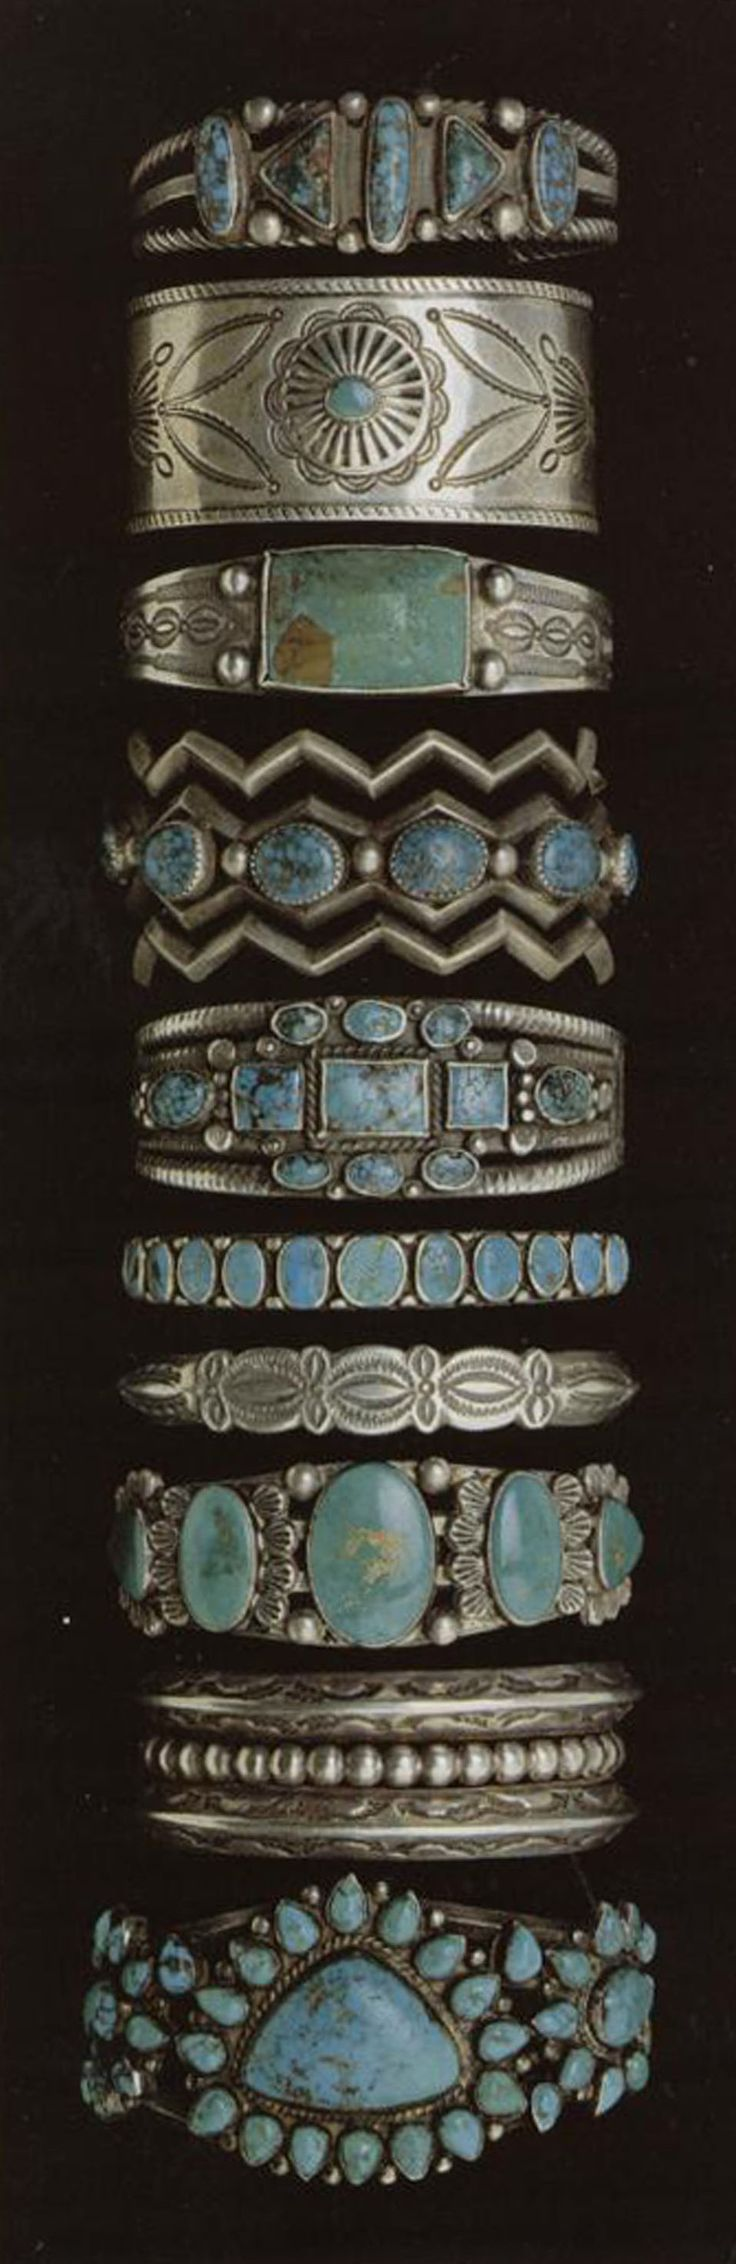 Navajo cuff bracelets from the Millicent Rogers Collection